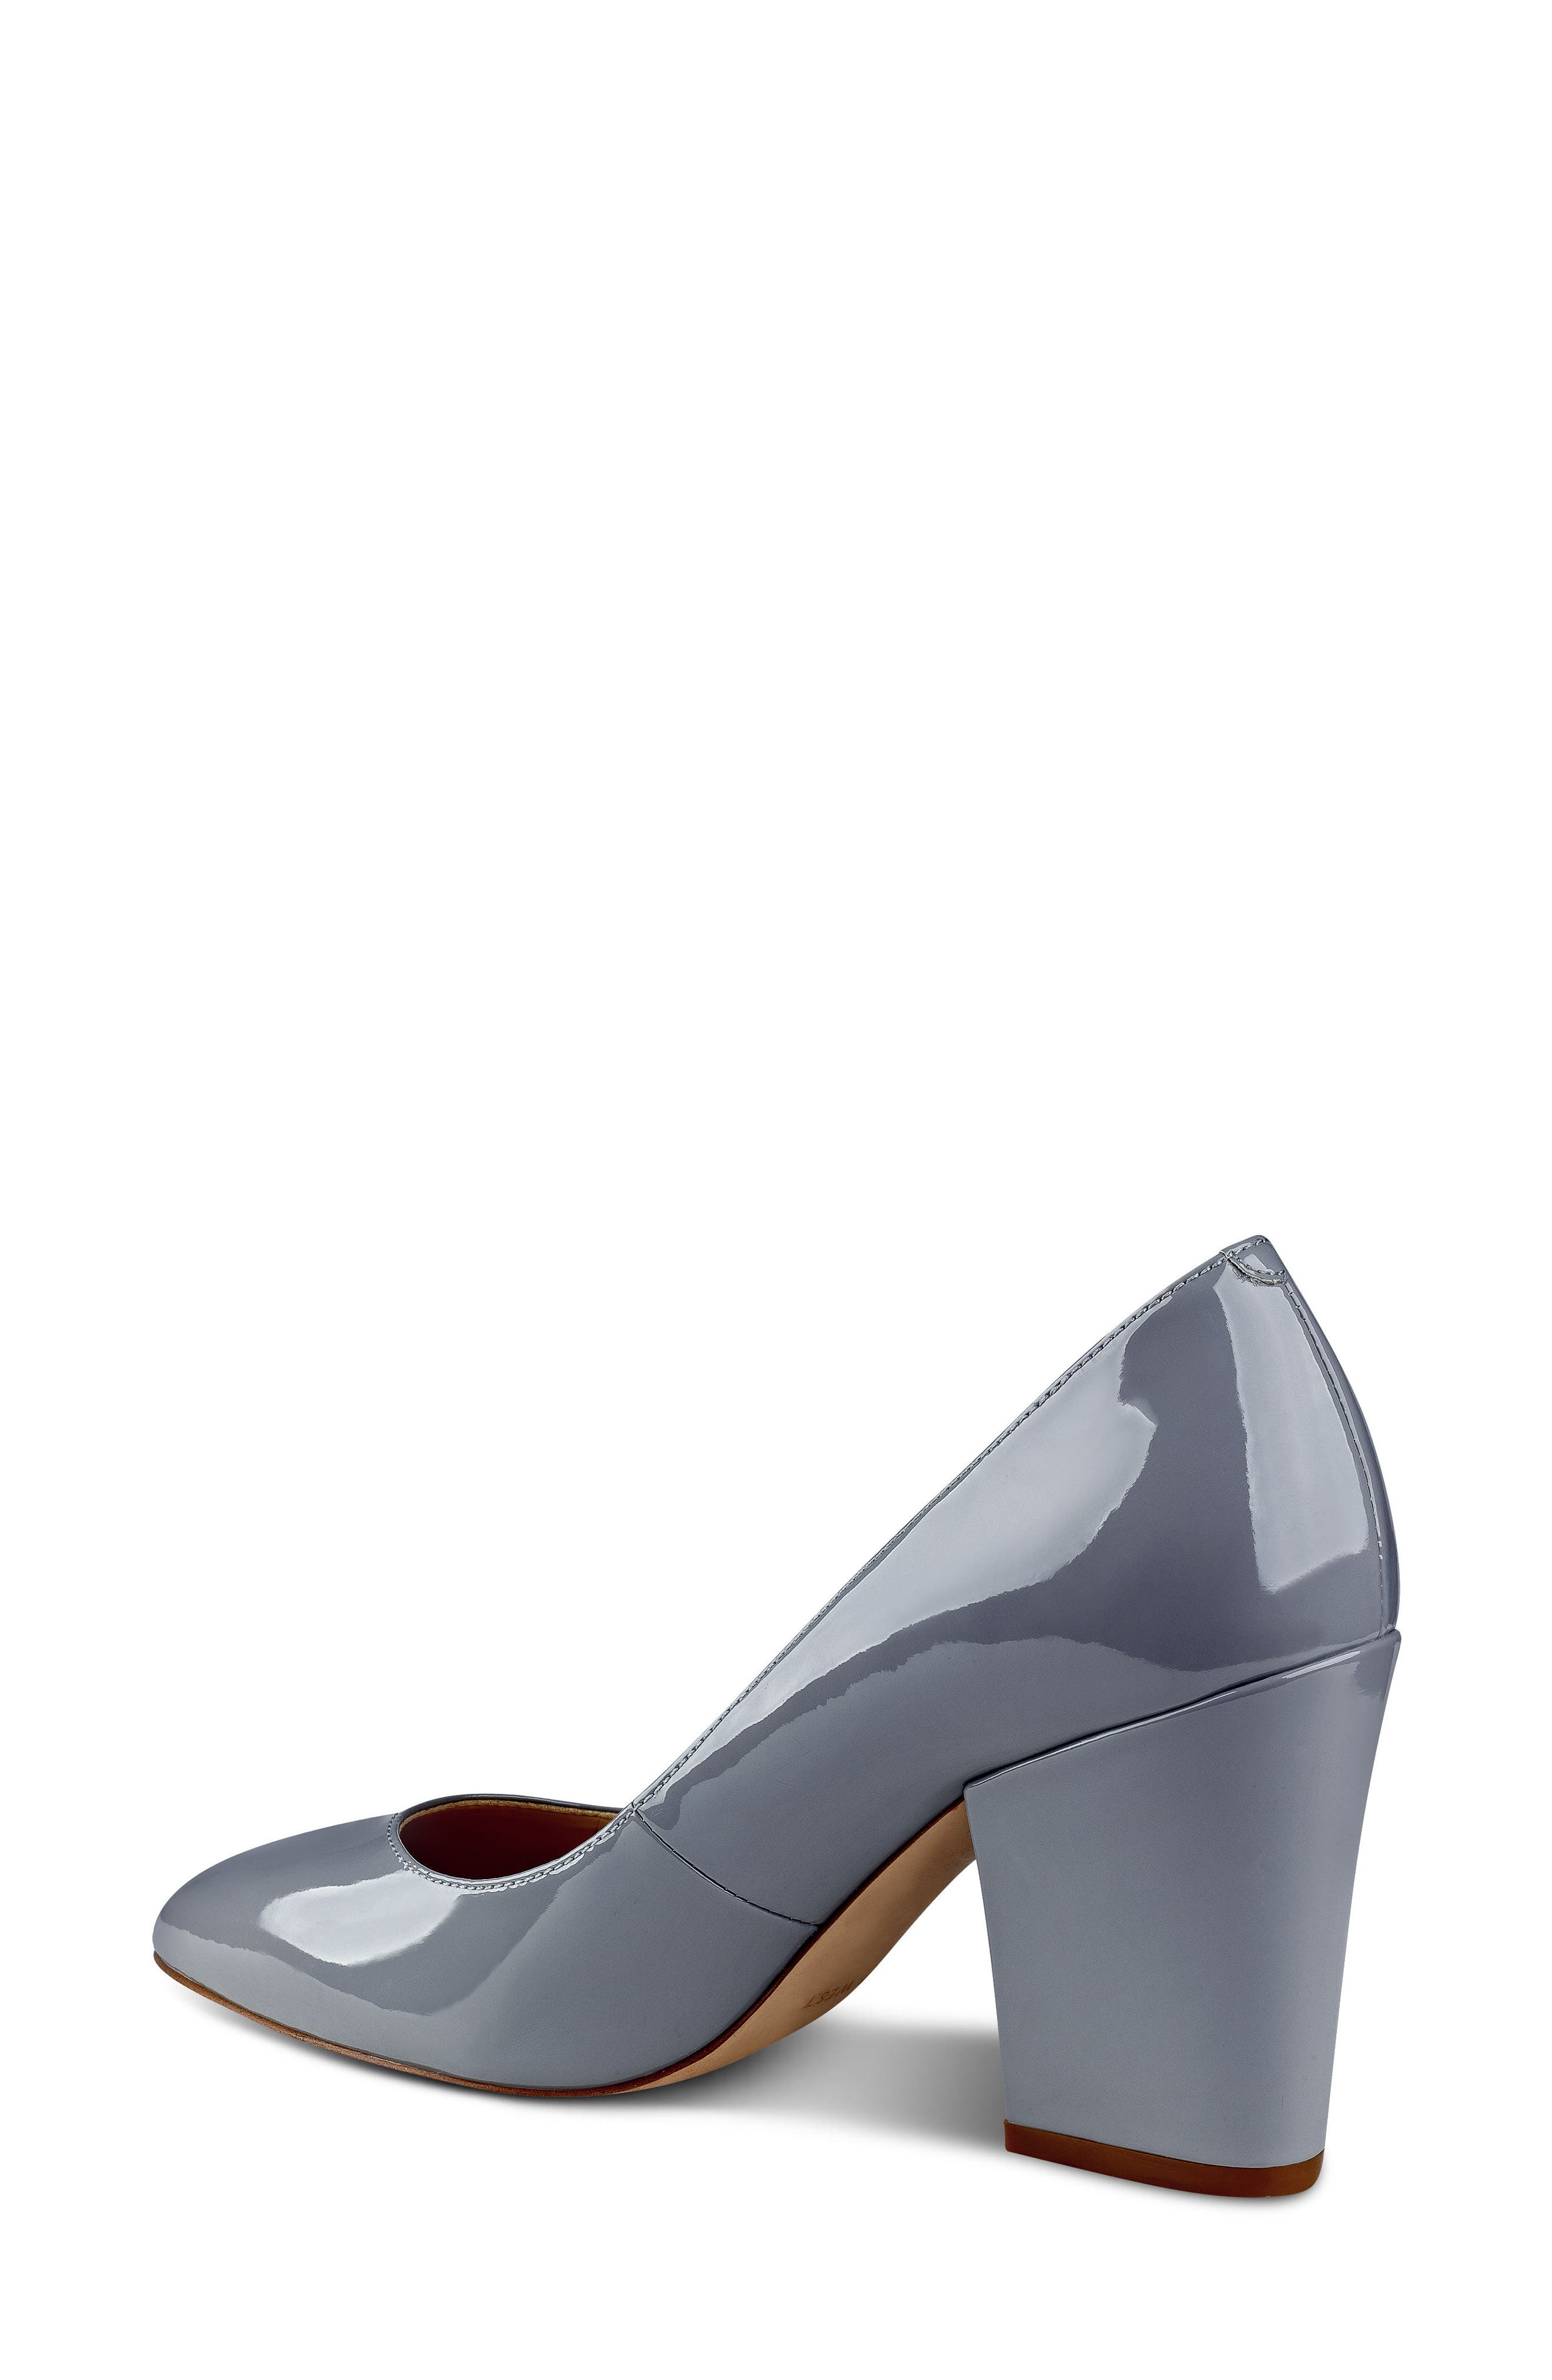 Scheila Pointy Toe Pump,                             Alternate thumbnail 2, color,                             GREY FAUX LEATHER